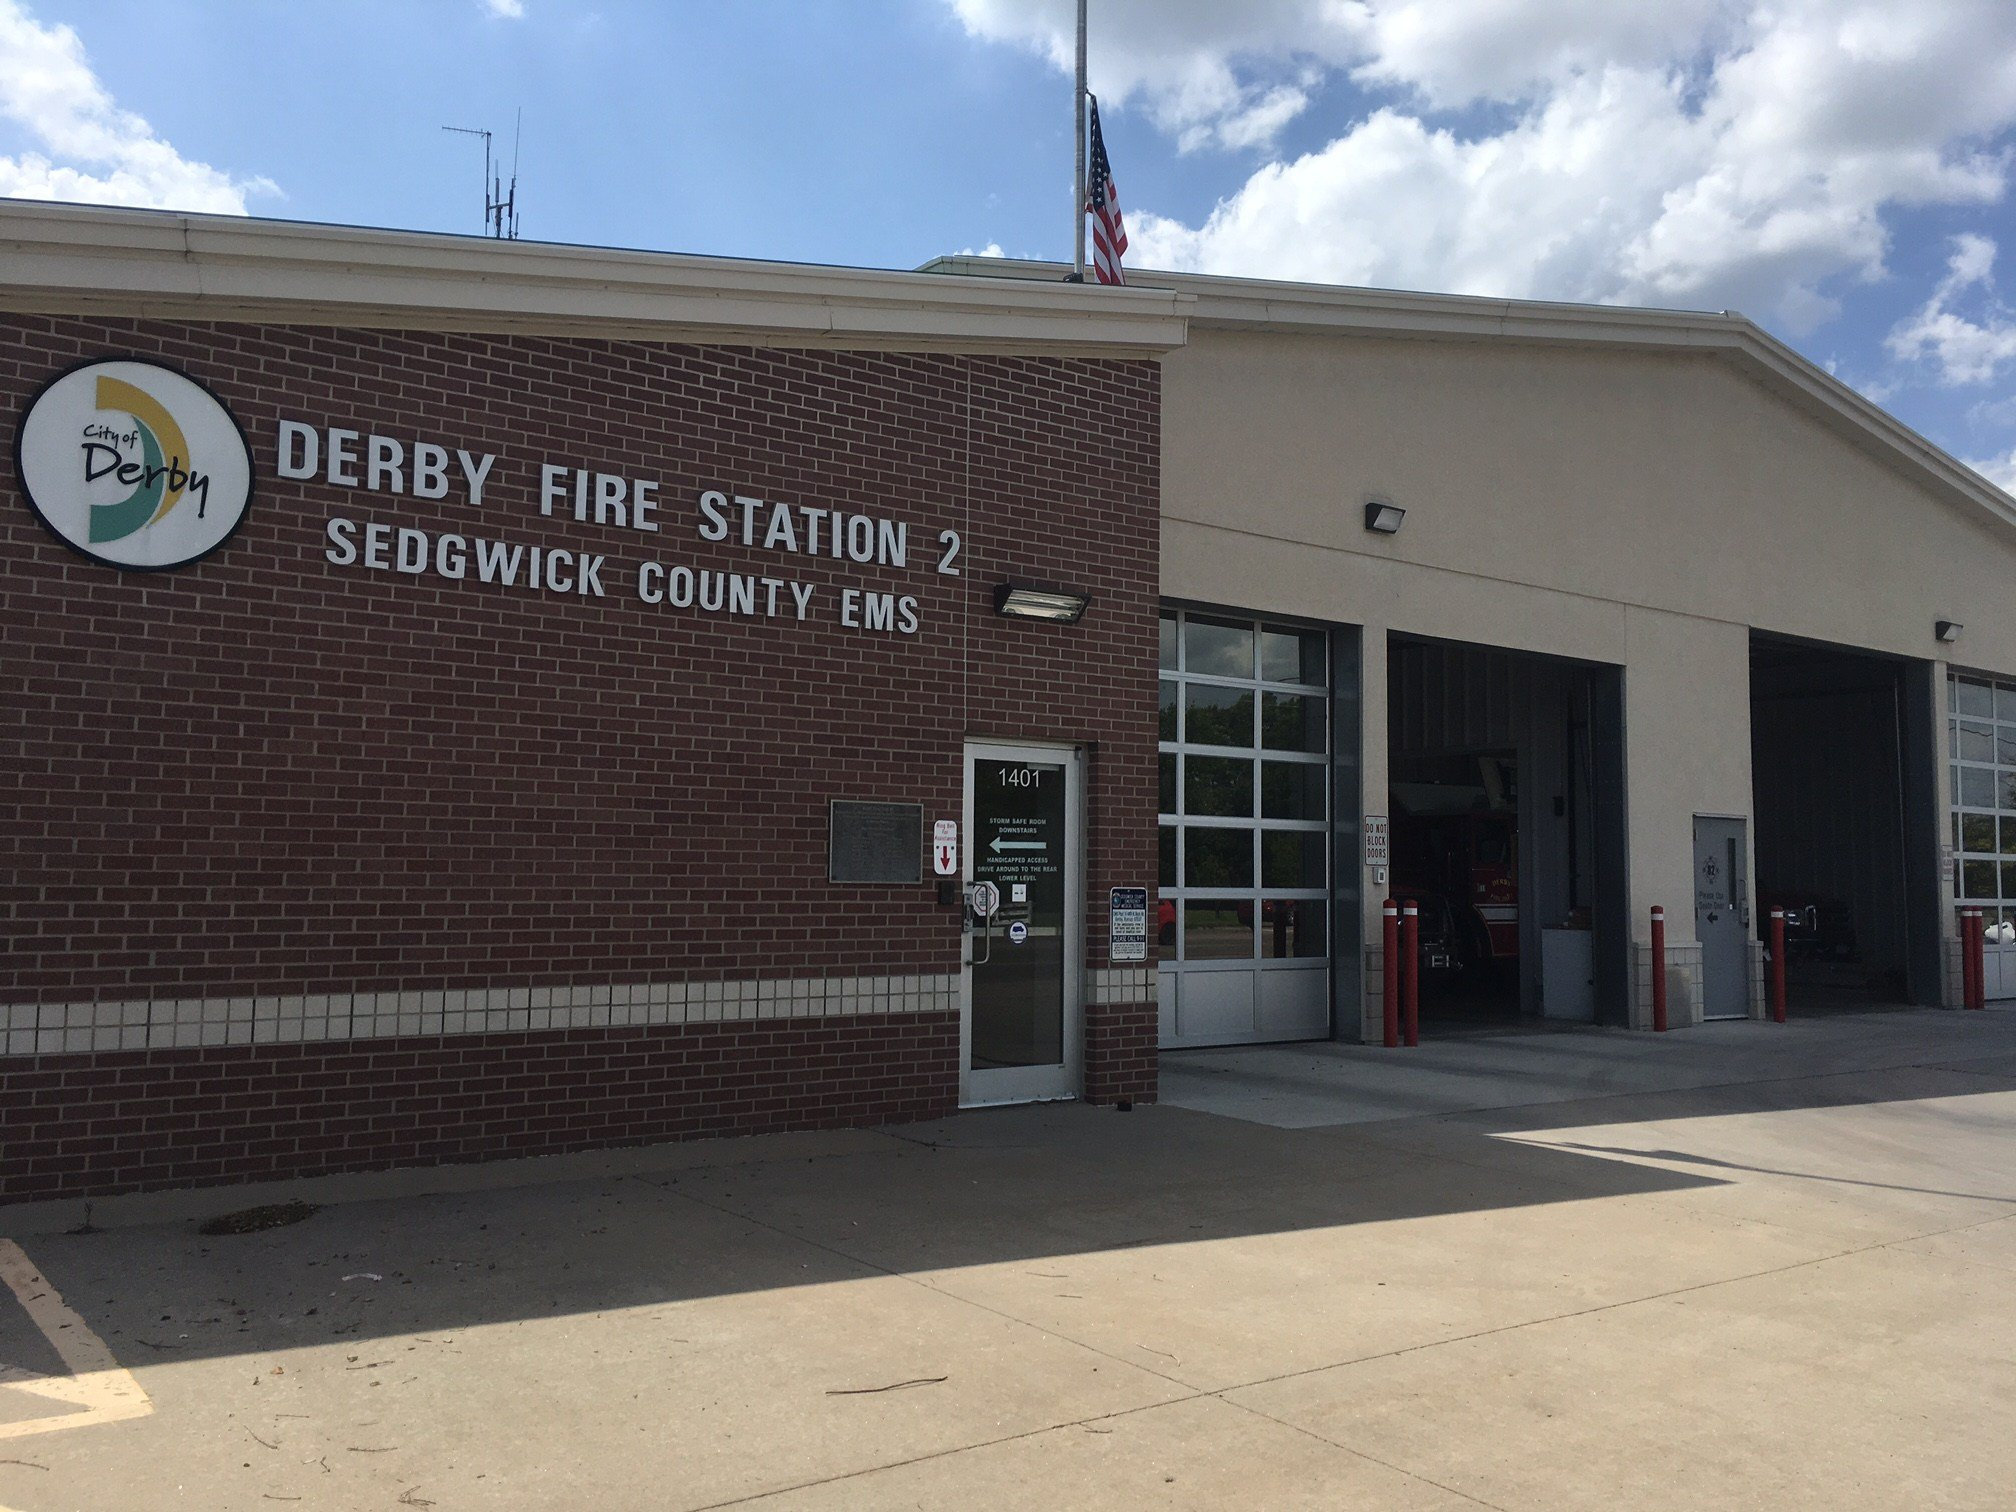 Derby Fire Station 2